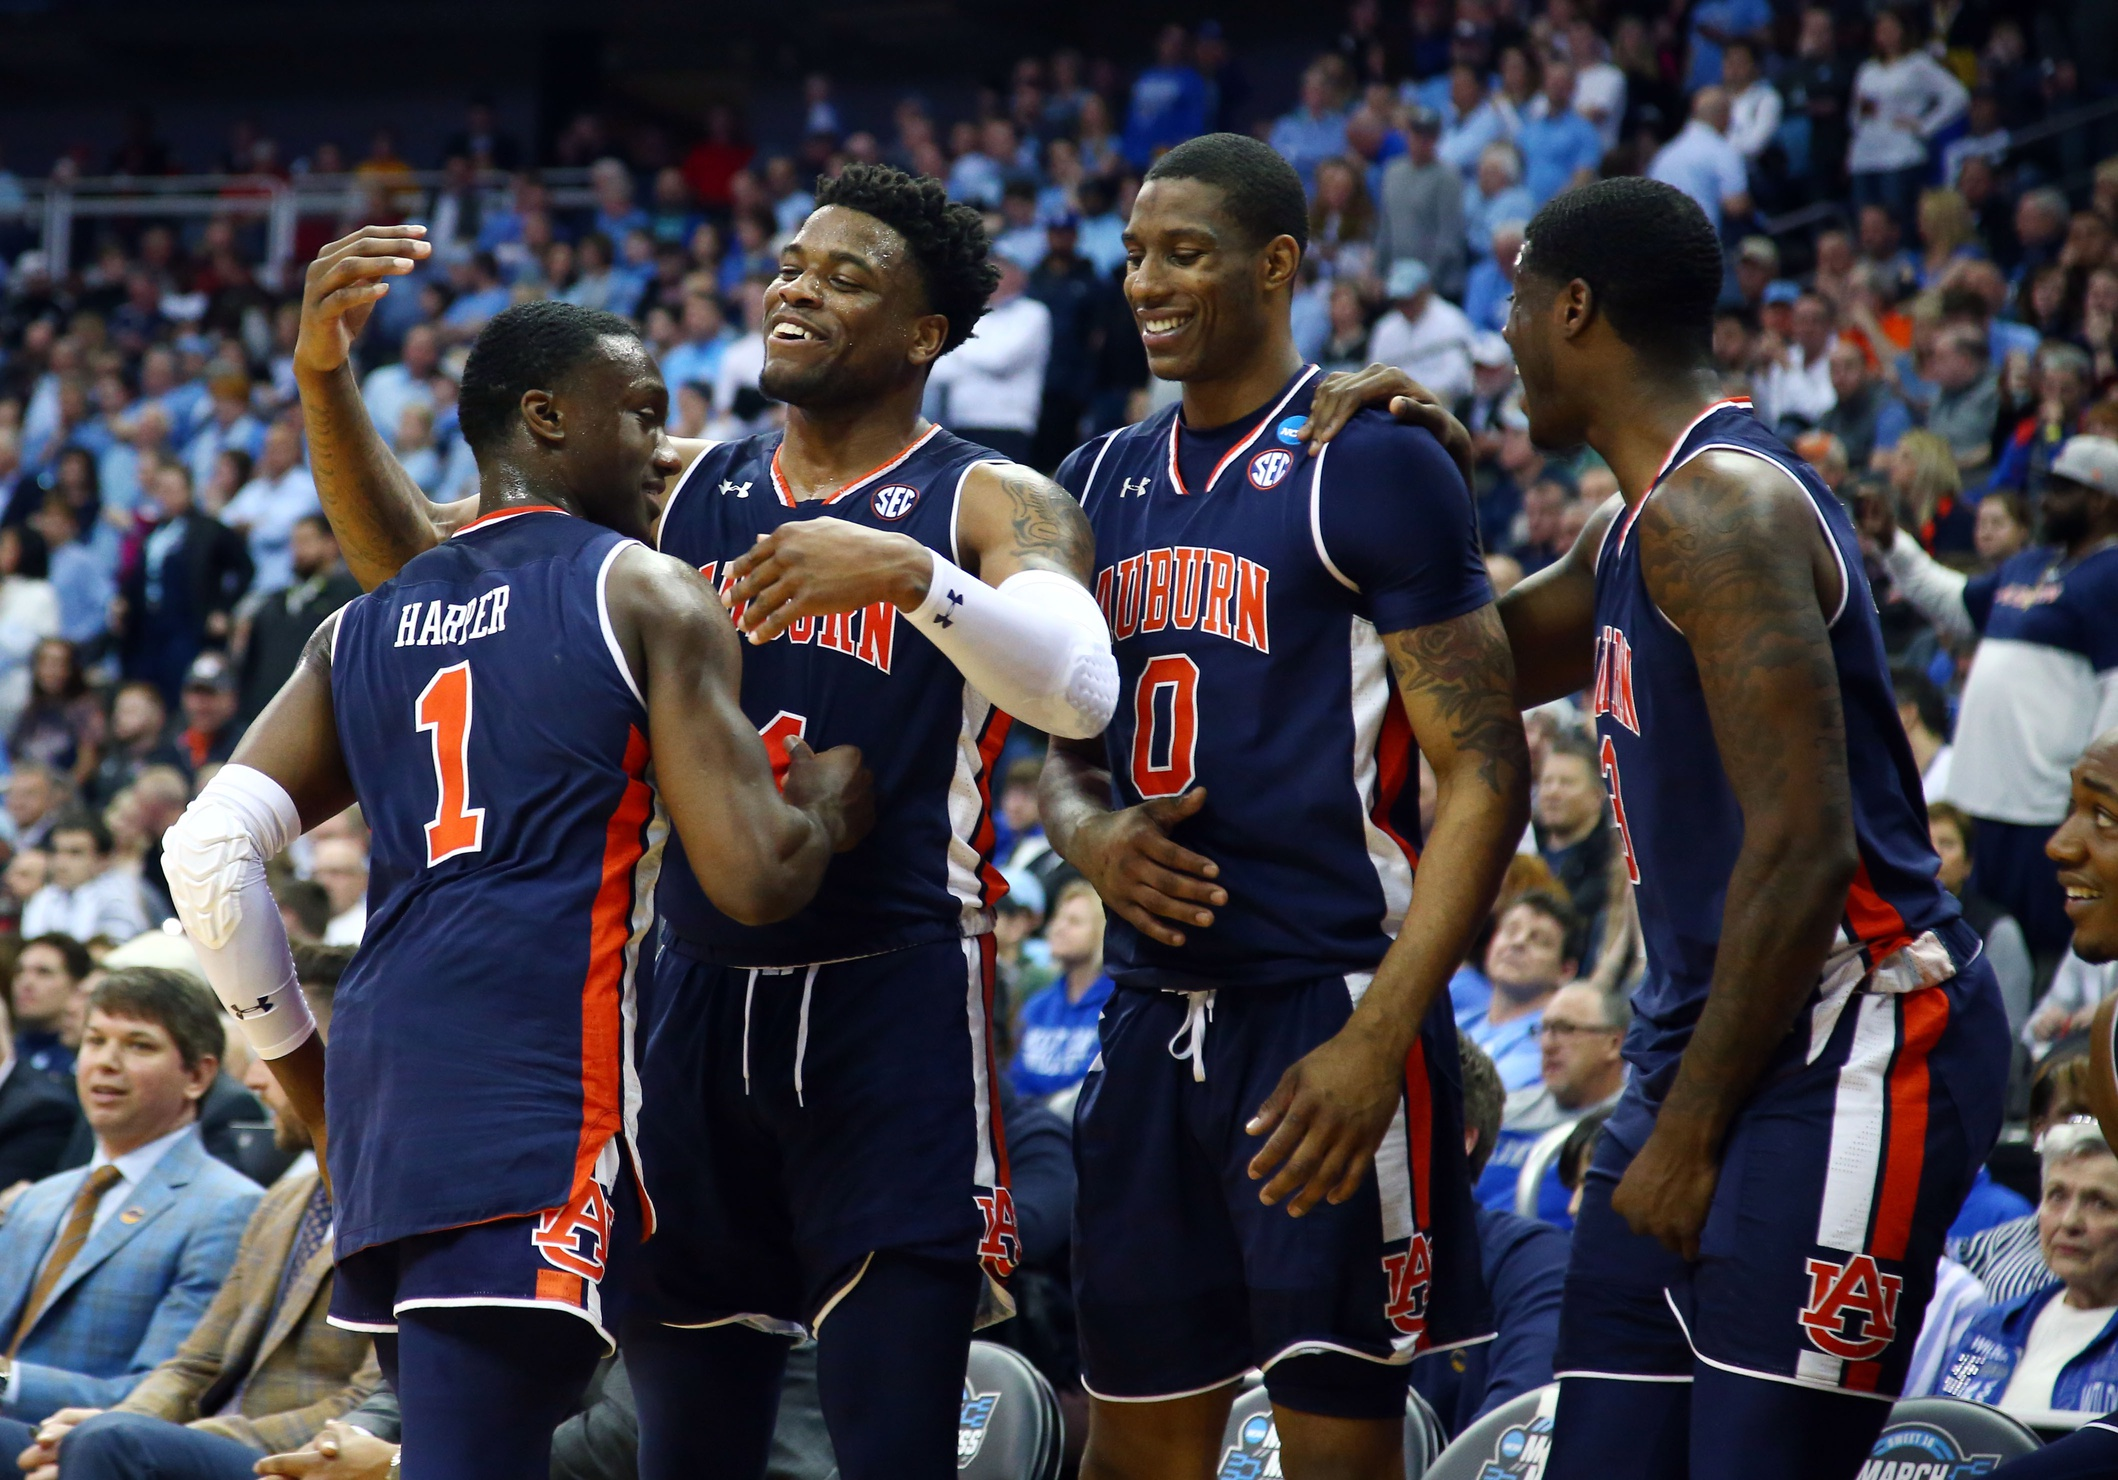 10 Things You Should Know About Auburn Basketball Ahead Of